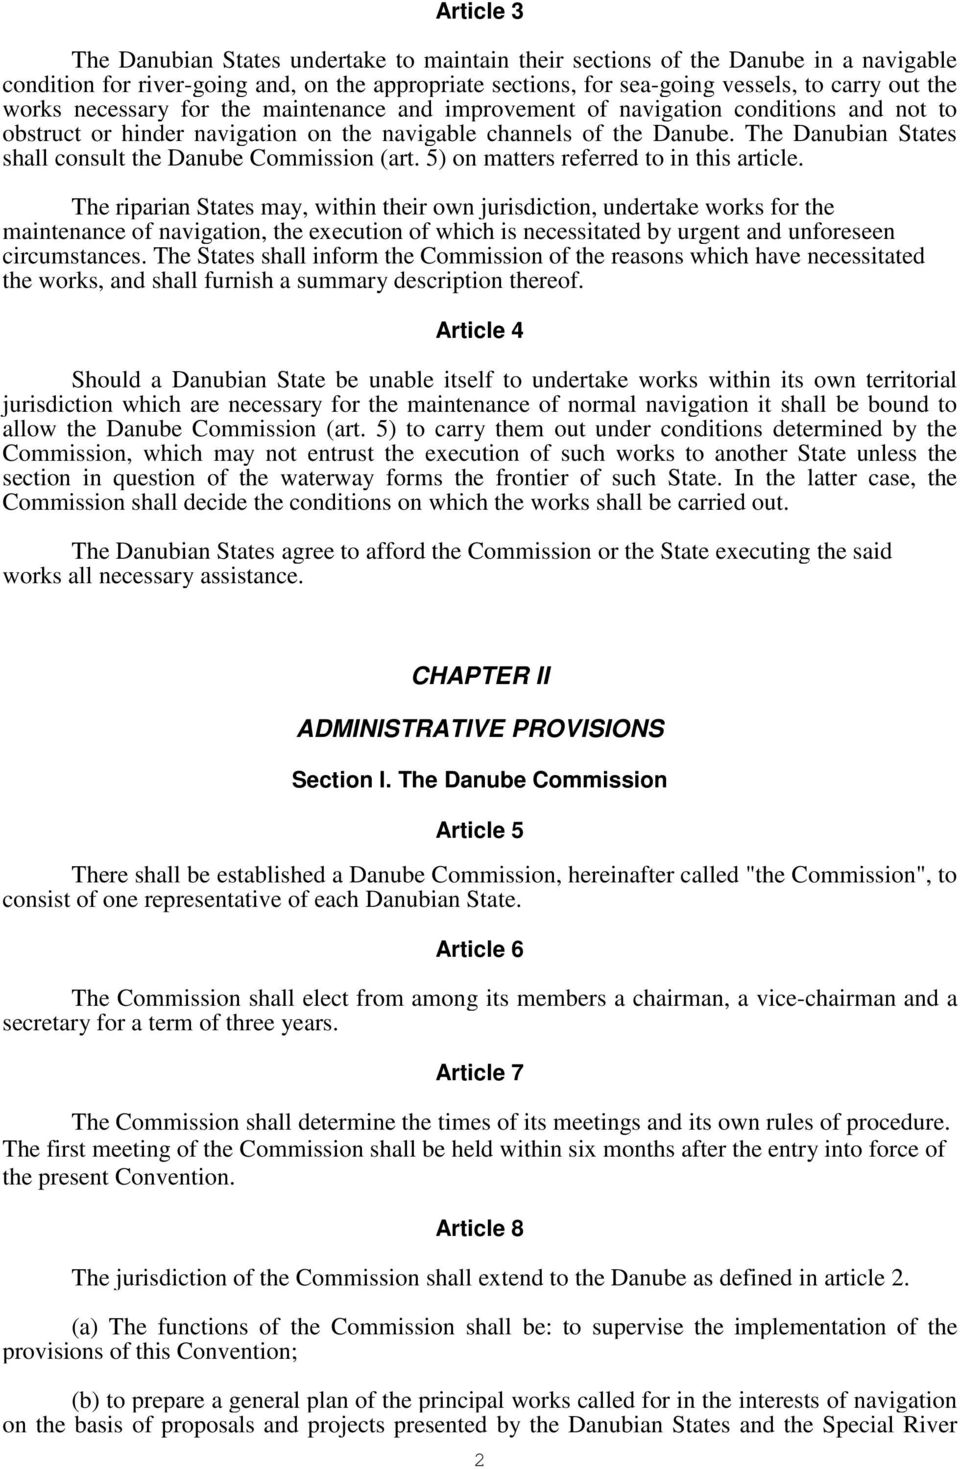 The Danubian States shall consult the Danube Commission (art. 5) on matters referred to in this article.